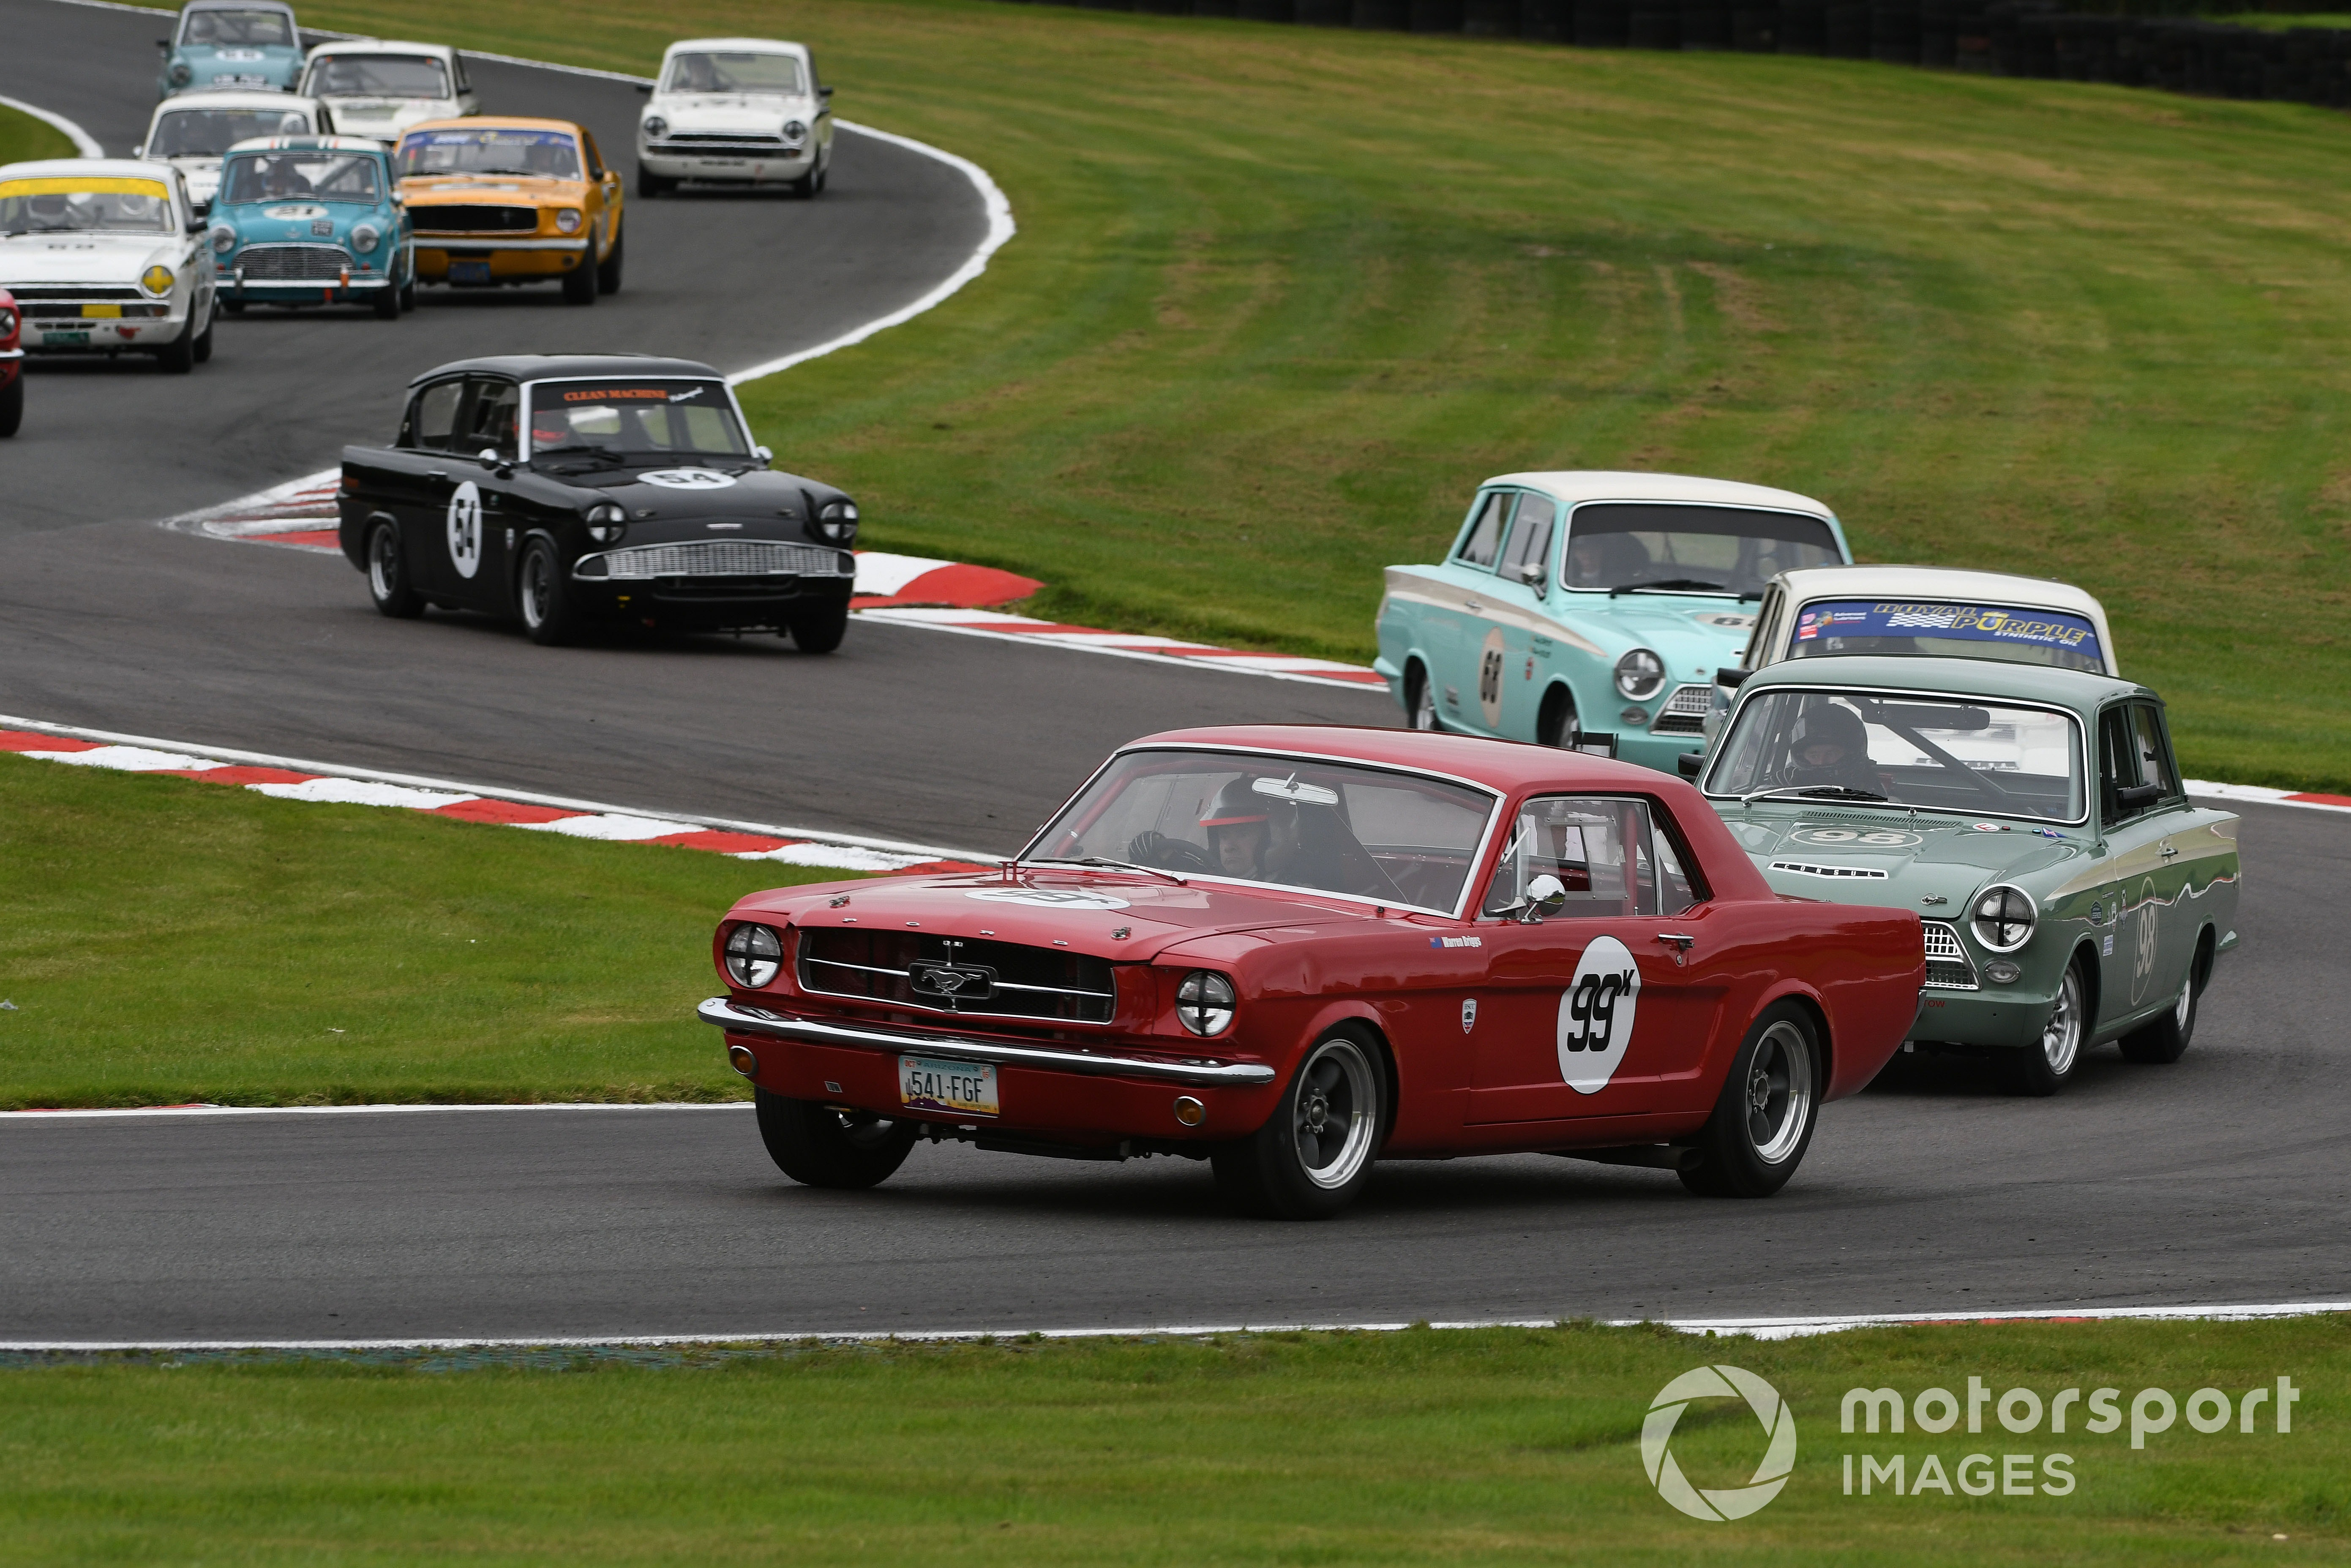 Warren Briggs (Ford Mustang), Oulton Park Gold Cup 2021